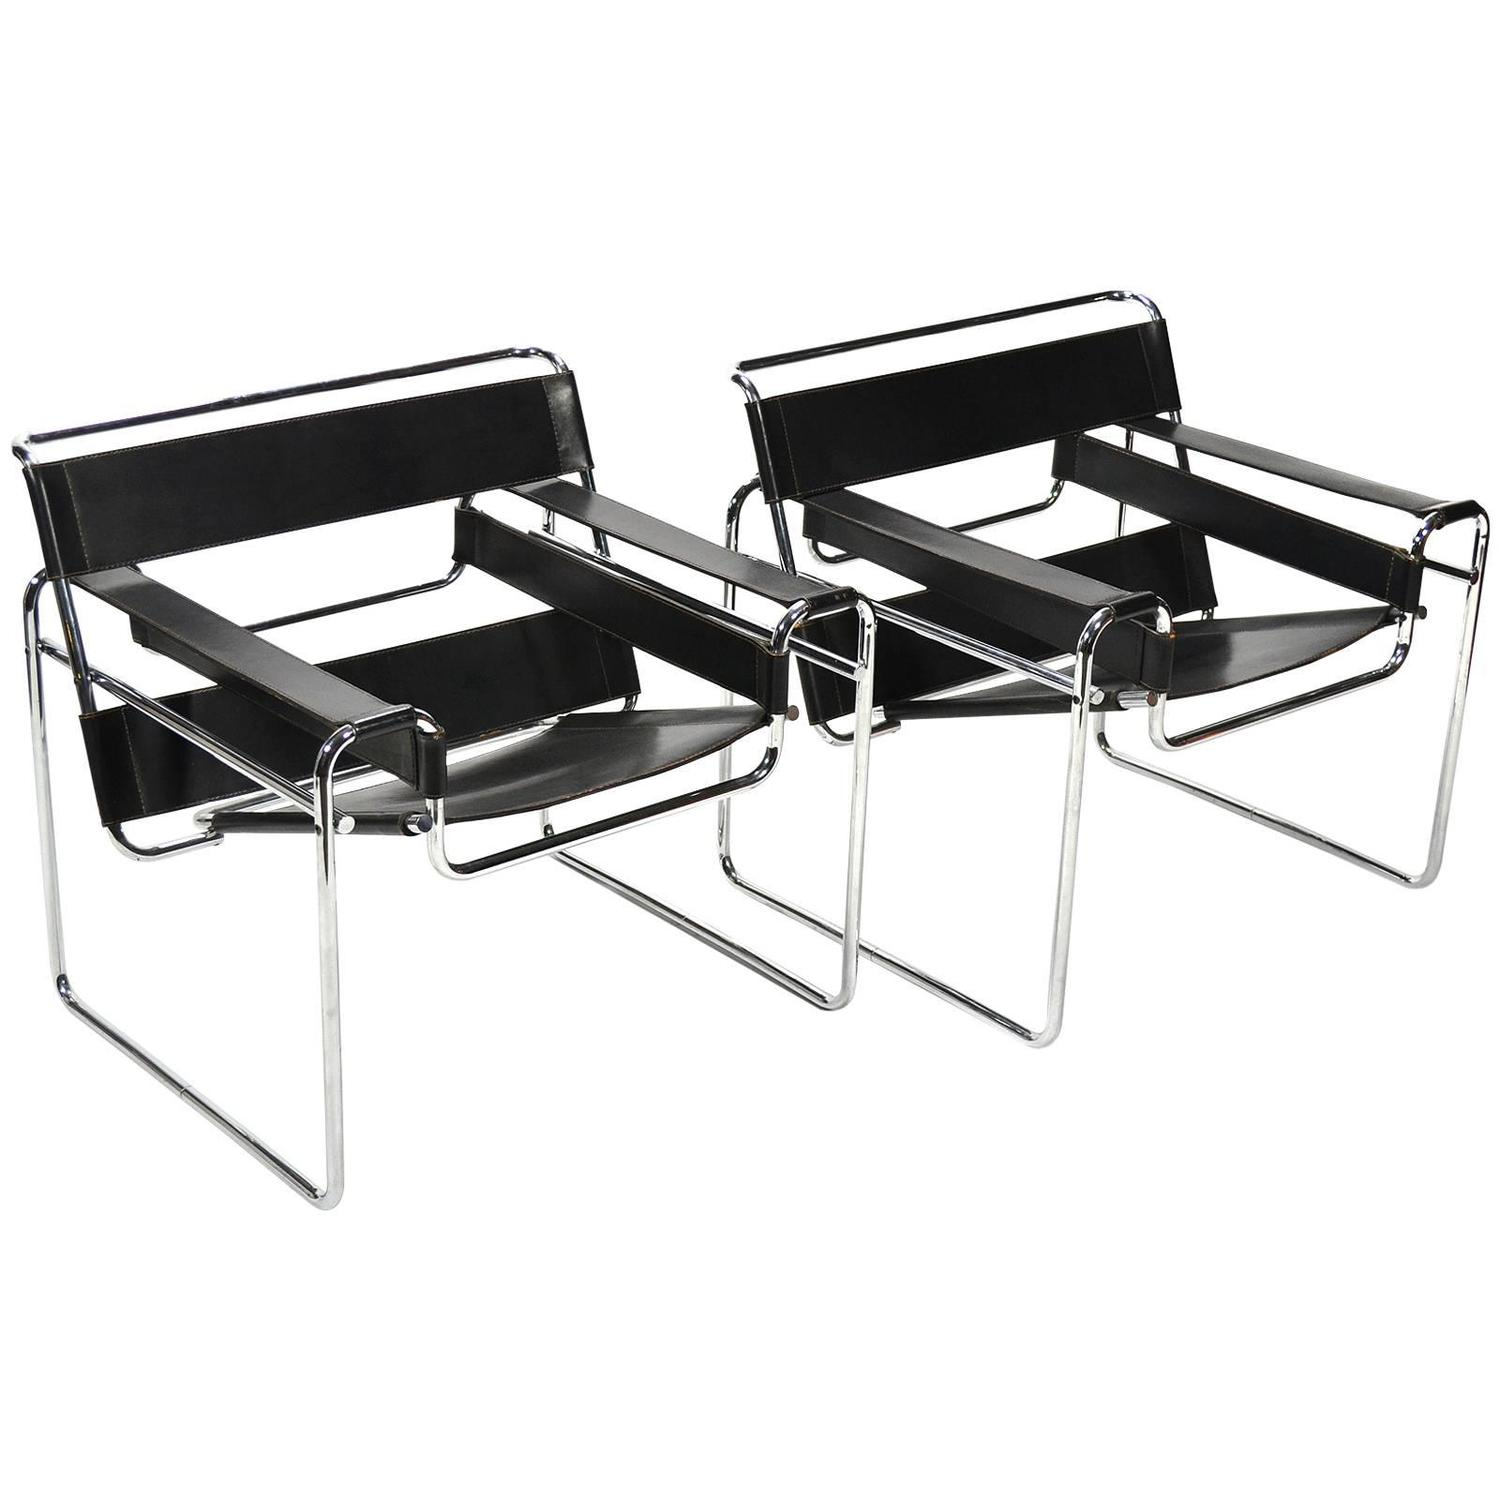 Superieur Marcel Breuer Pair Of Early Wassily Chairs By Knoll For Sale At 1stdibs